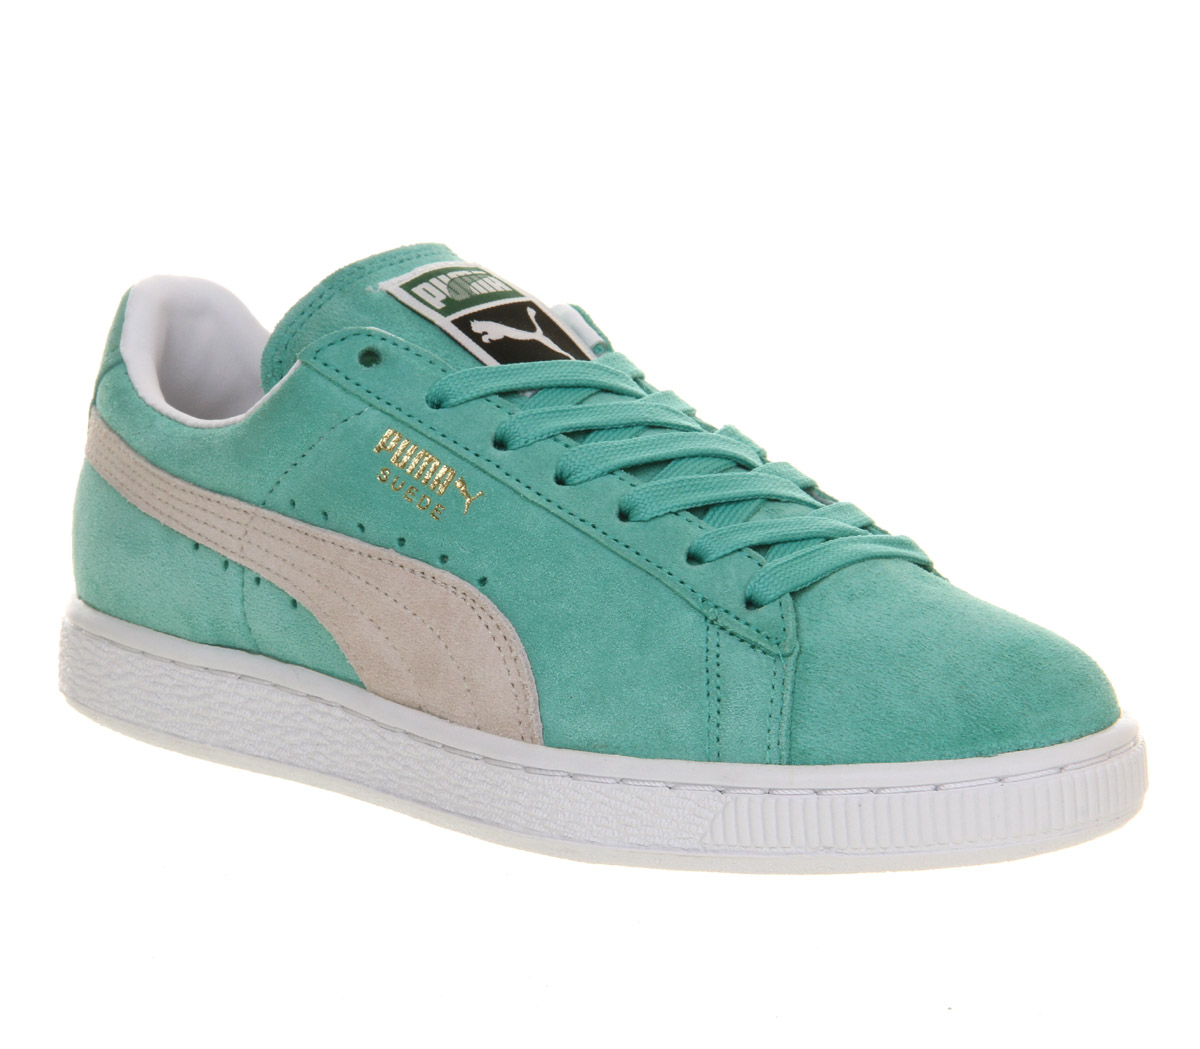 Mens-Puma-Suede-Classic-ELECTRIC-GREEN-WHITE-Trainers-Shoes